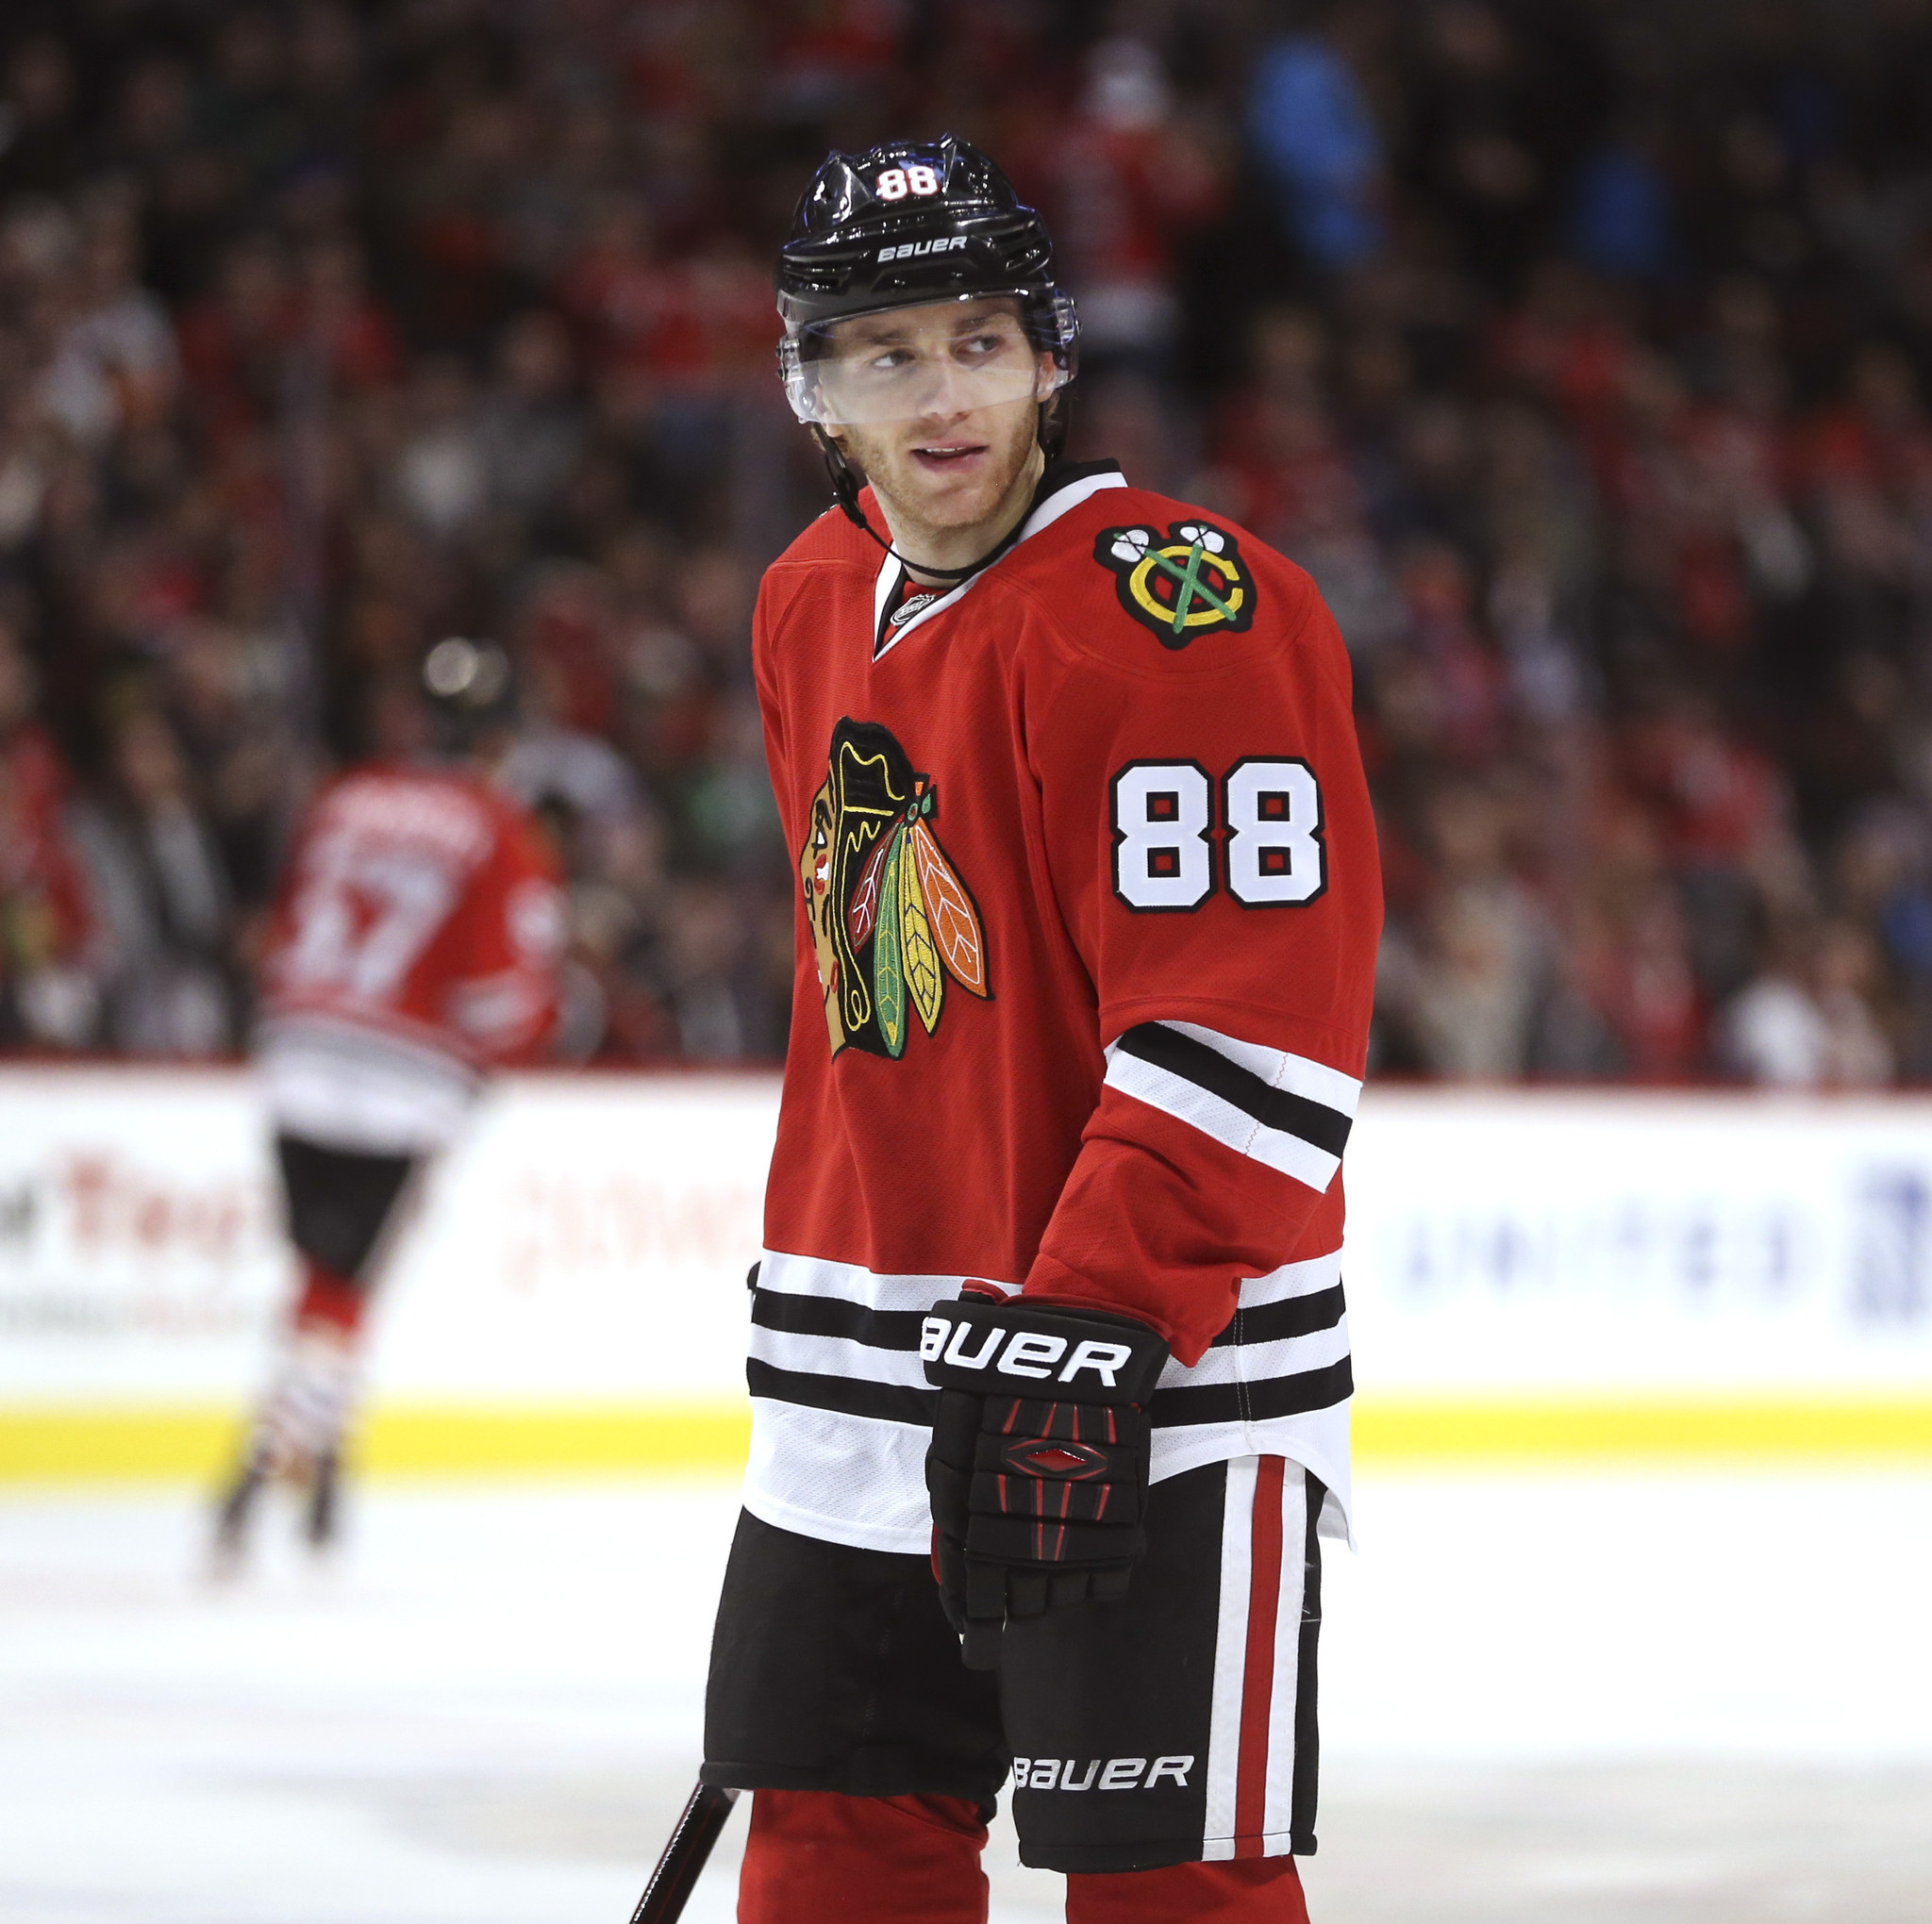 50 goals on the horizon, but don't tell Patrick Kane about it - Chicago Tribune